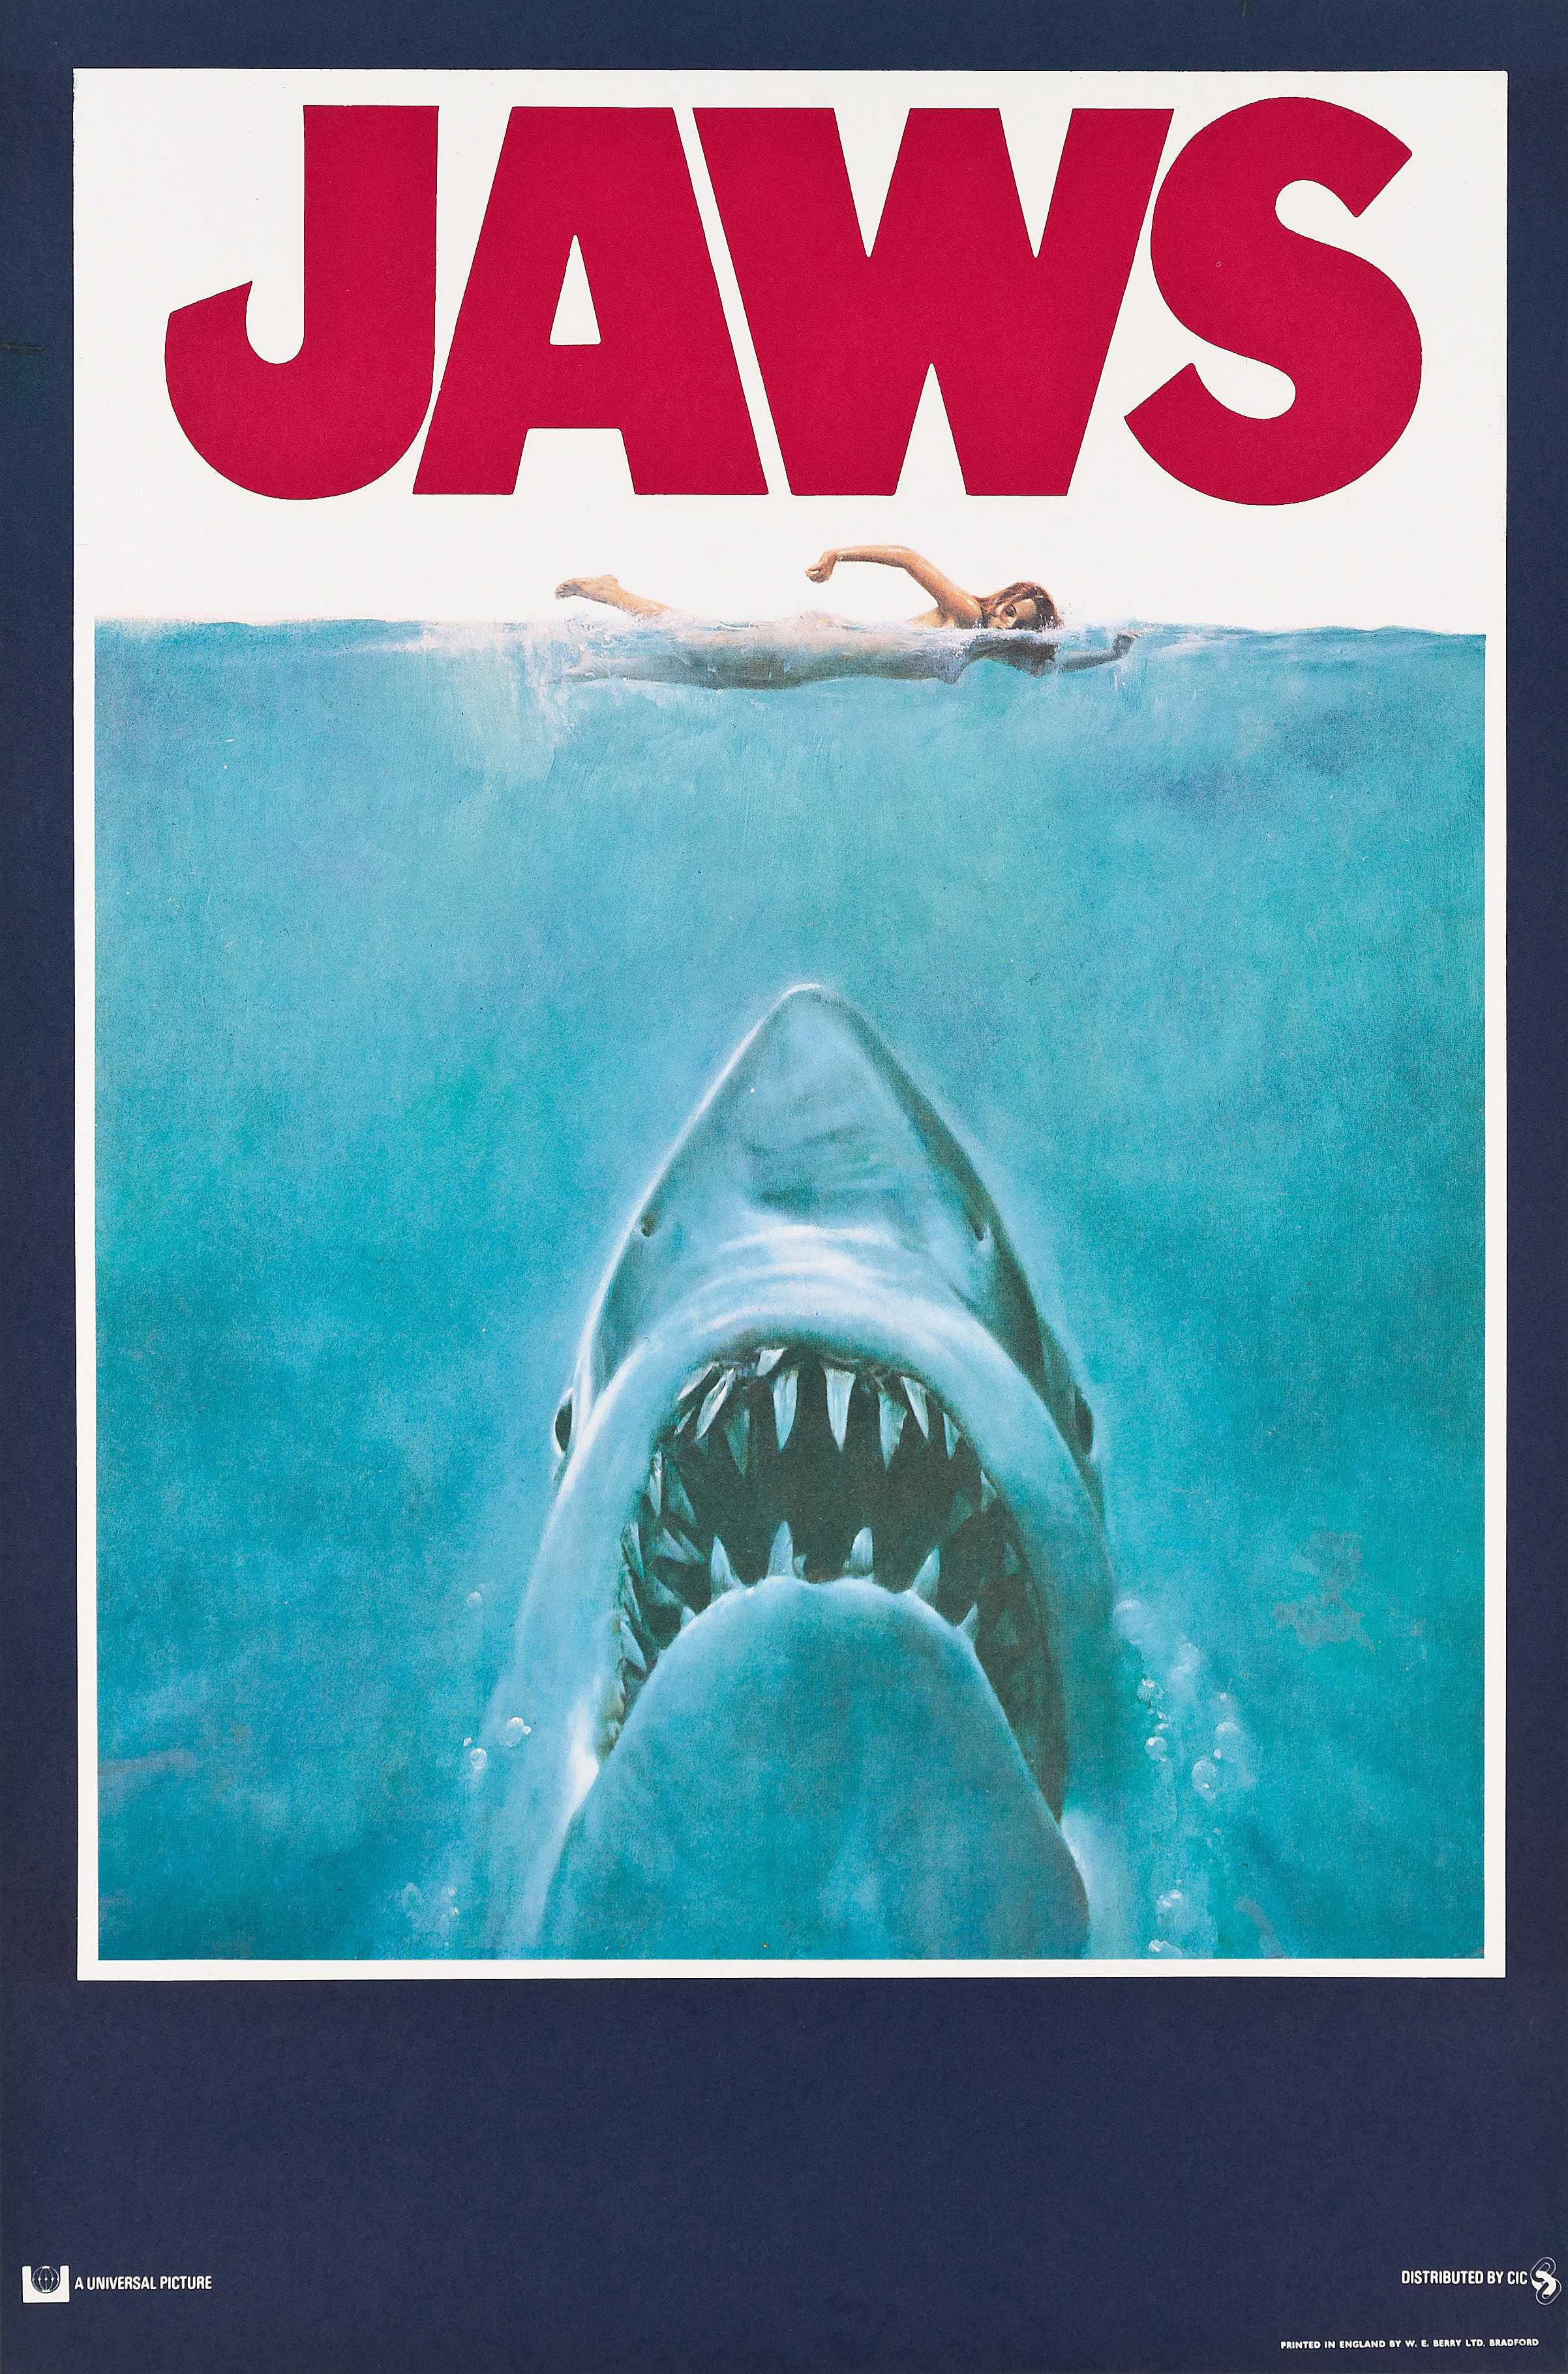 What S The Coolest Movie Poster You Ve Ever Seen Movies Film Posters Vintage Classic Movie Posters Jaws Movie Poster